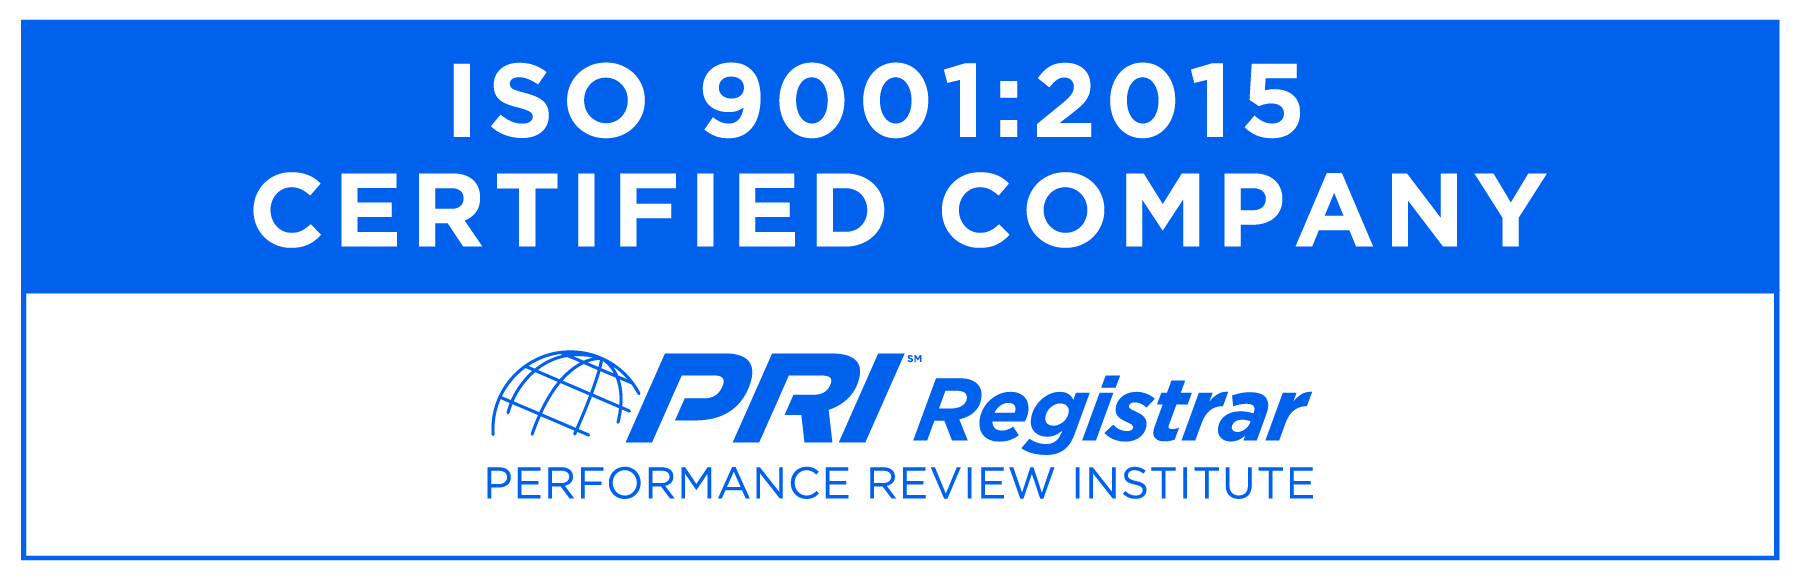 A ISO 9001:2015 Certified Company